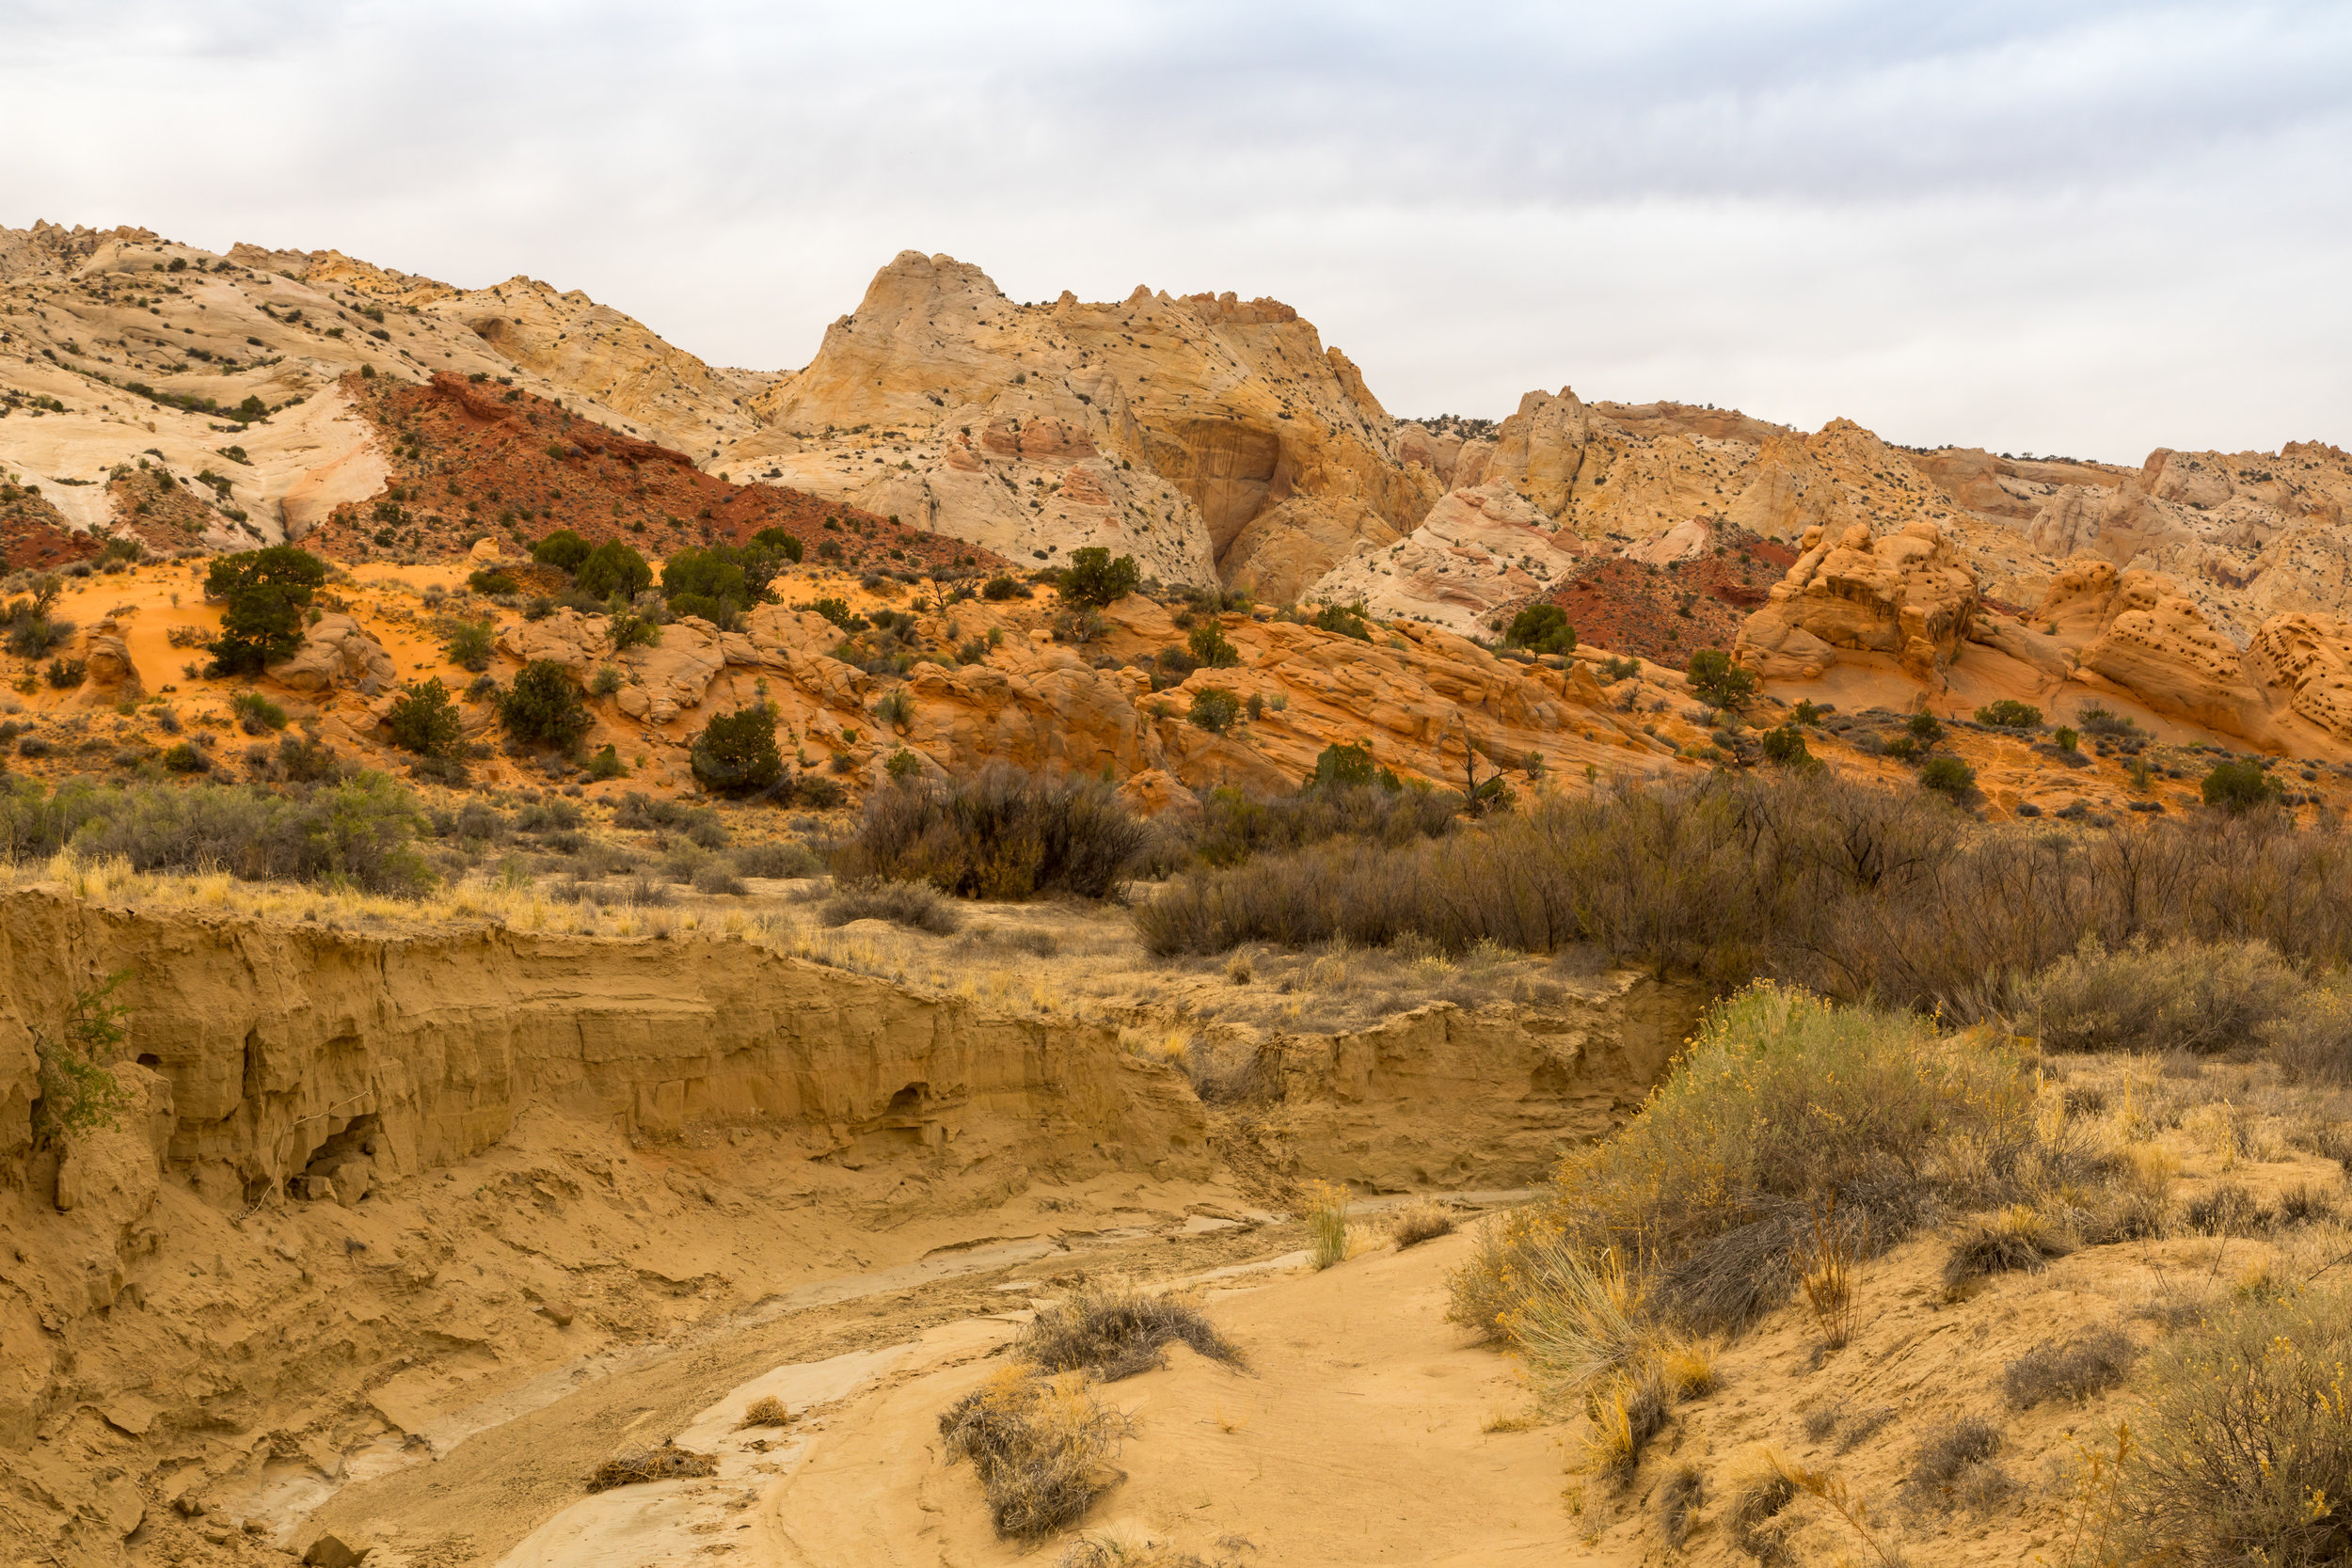 Capitol Reef National Park, Image # 4905